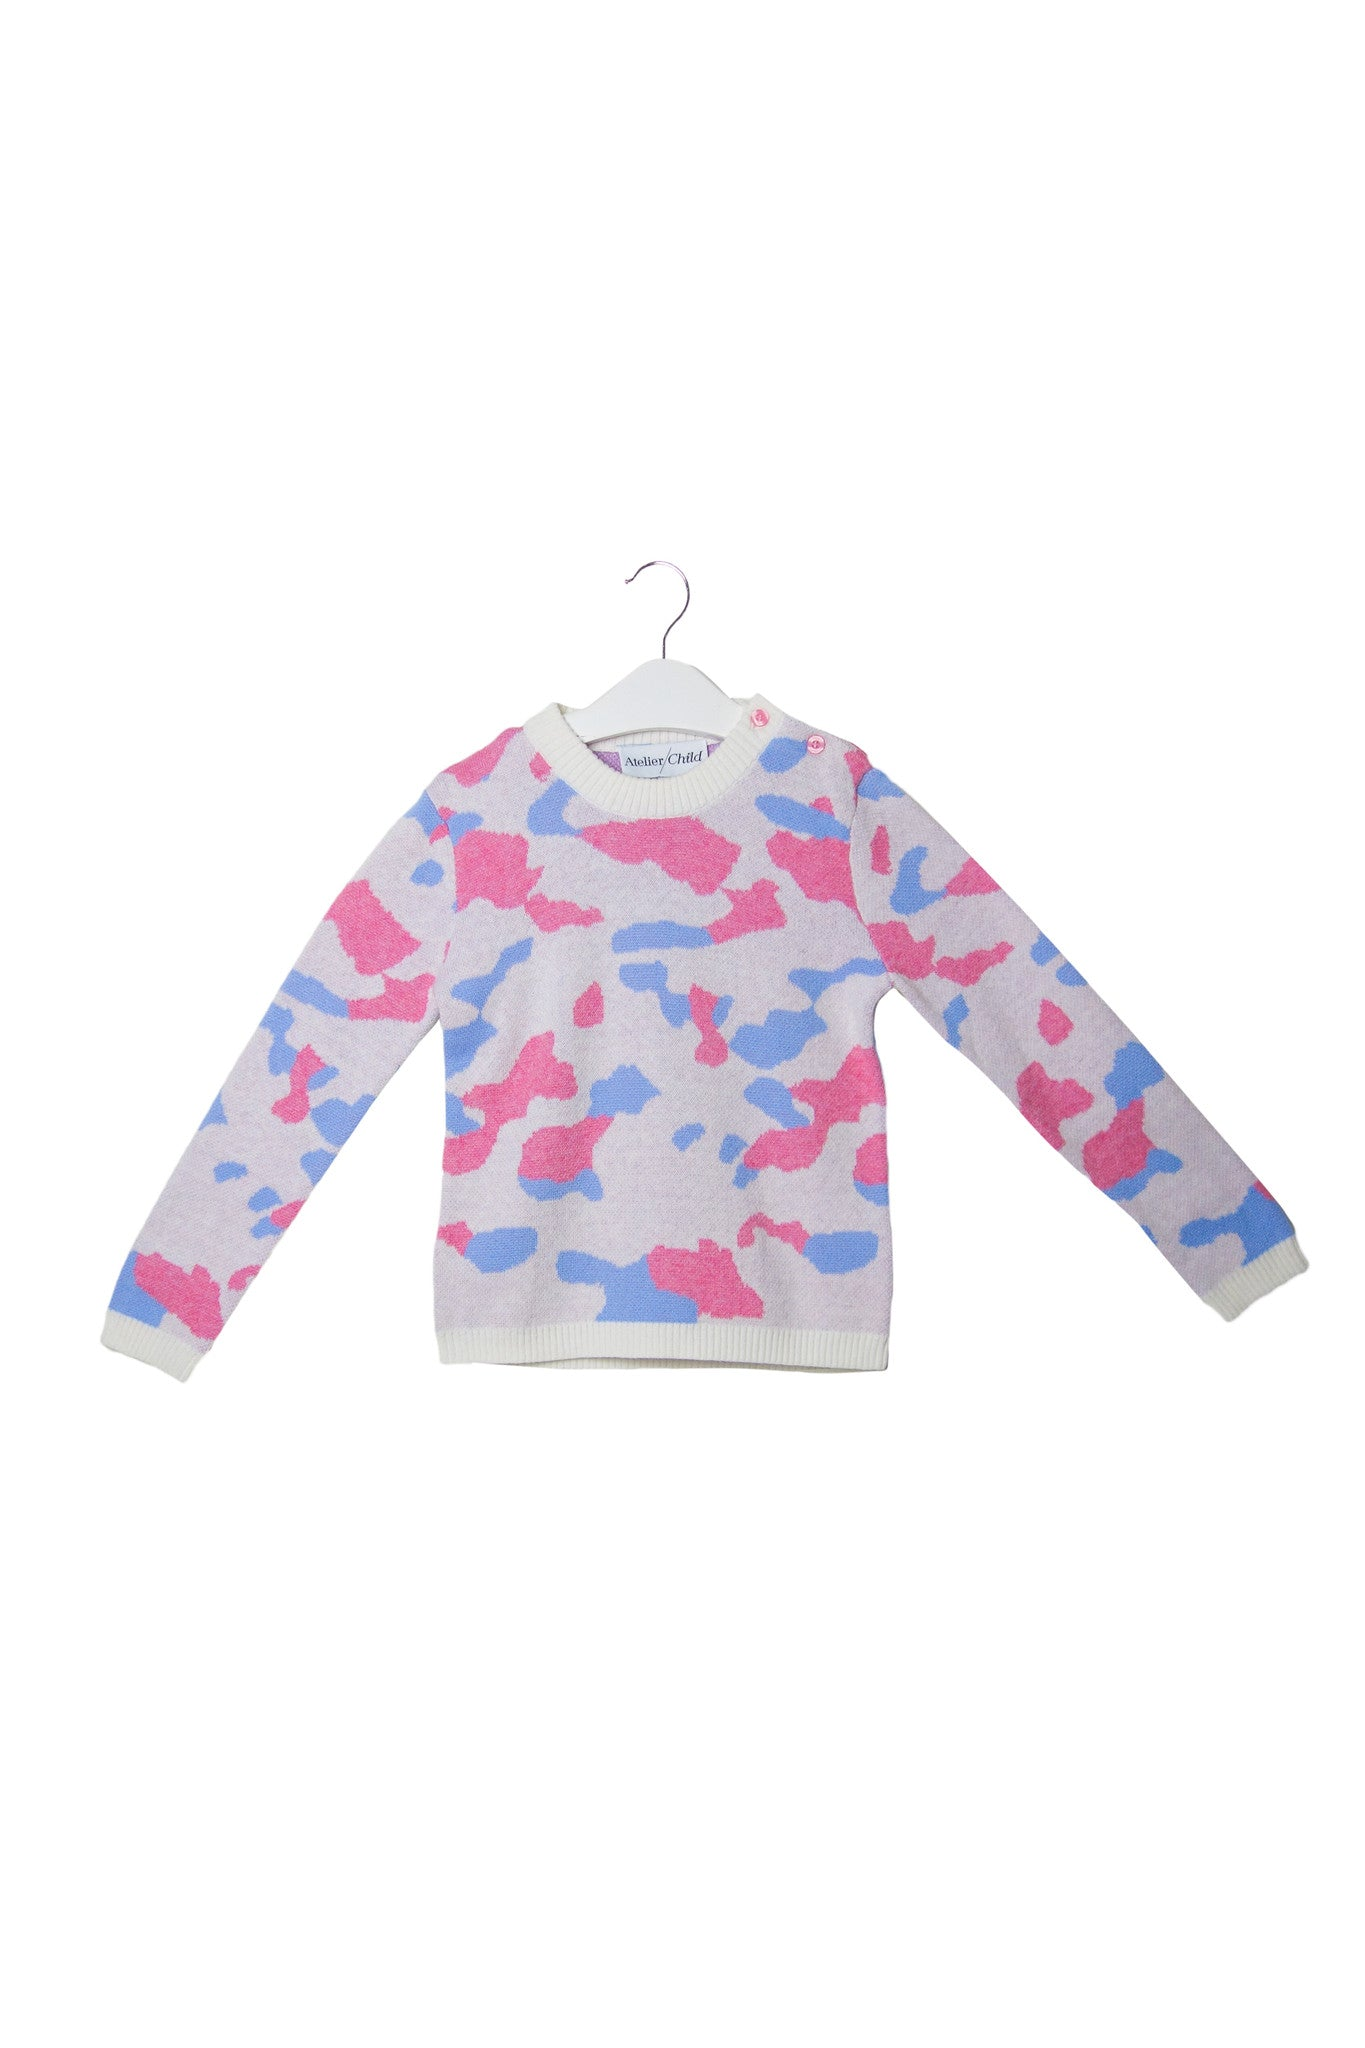 10002842 Atelier/Child Kids~Sweater 2-3T at Retykle